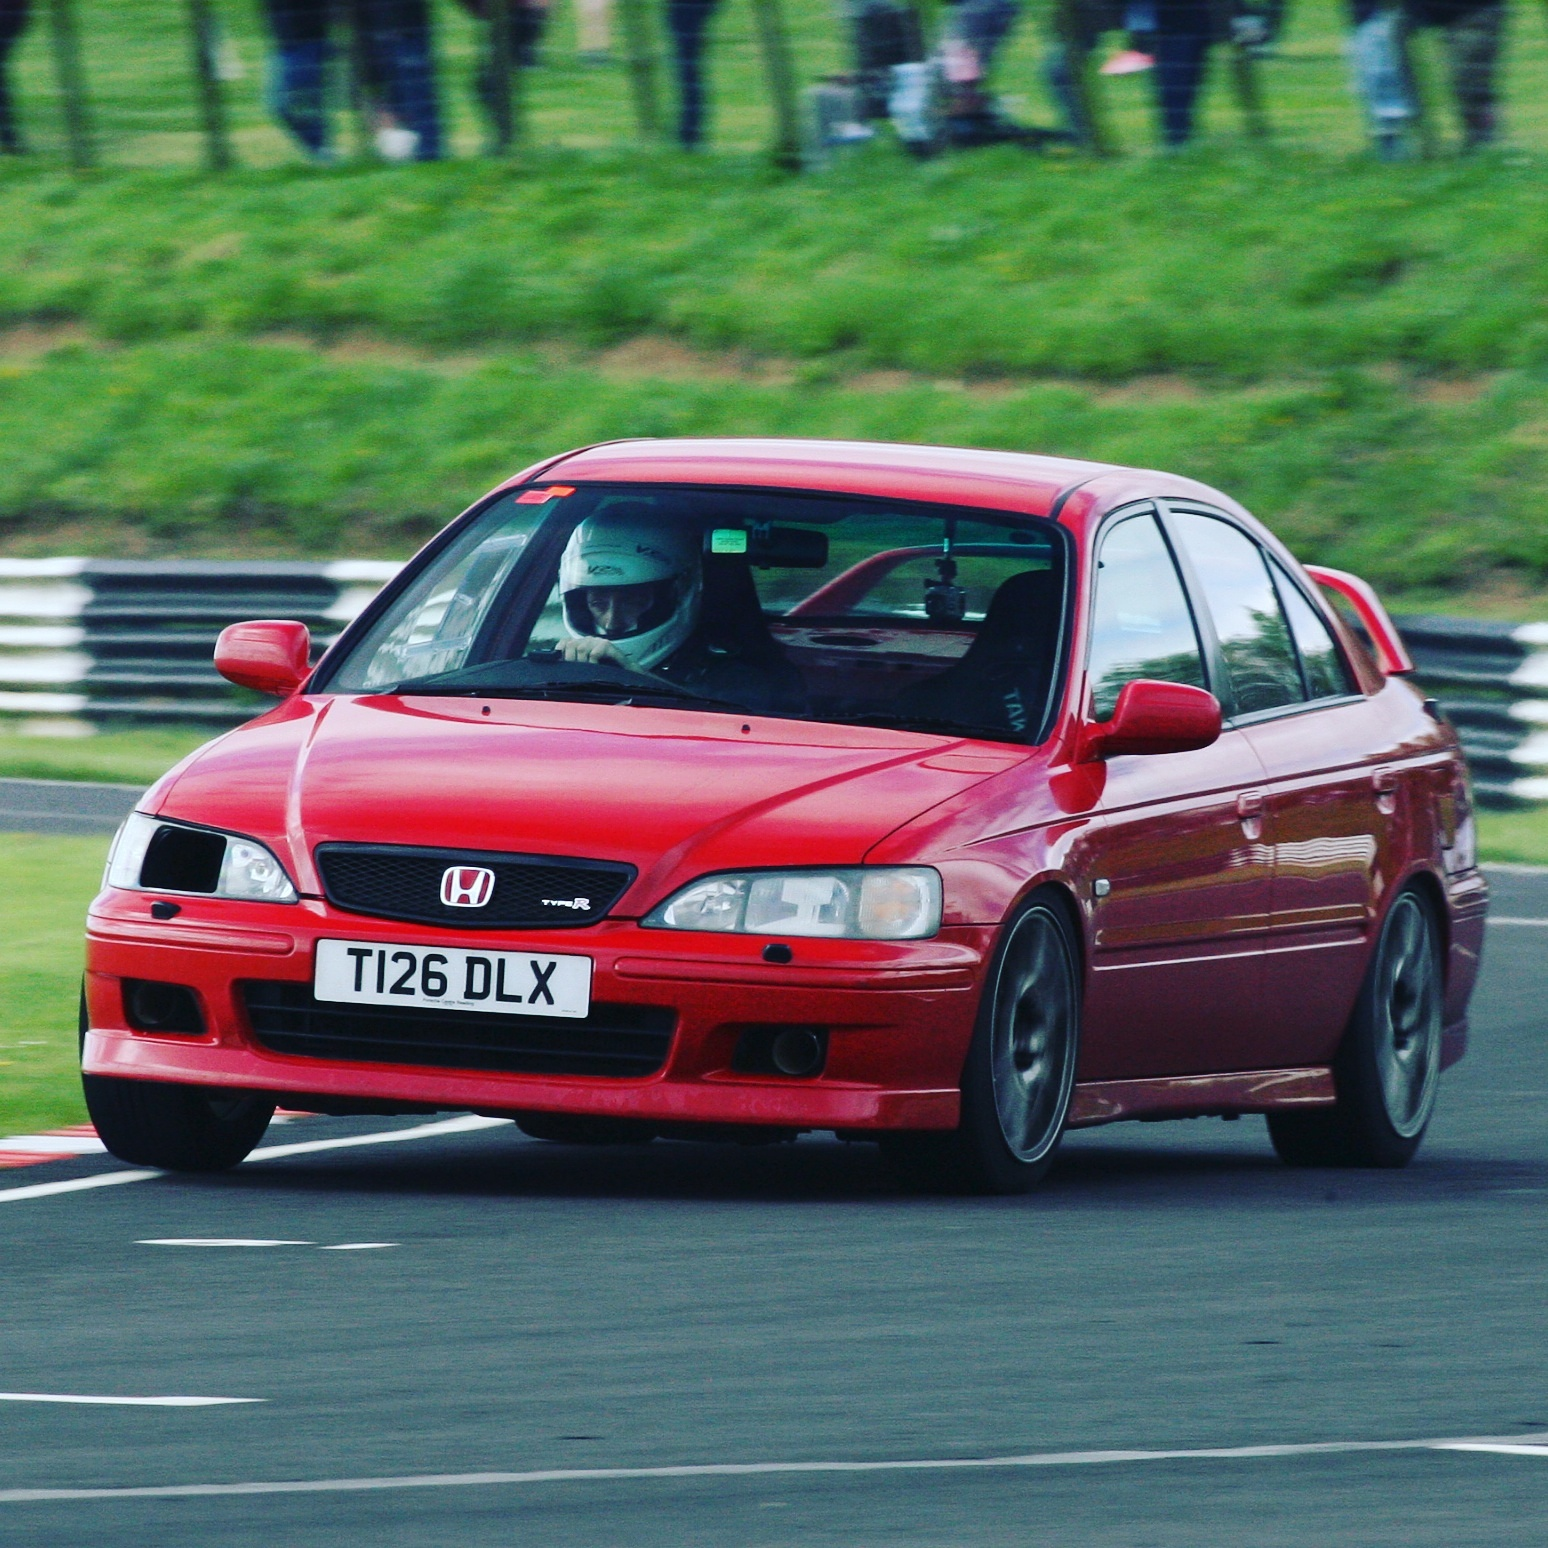 Accord Type-R - K-Swap & Supercharger Project - Page 1